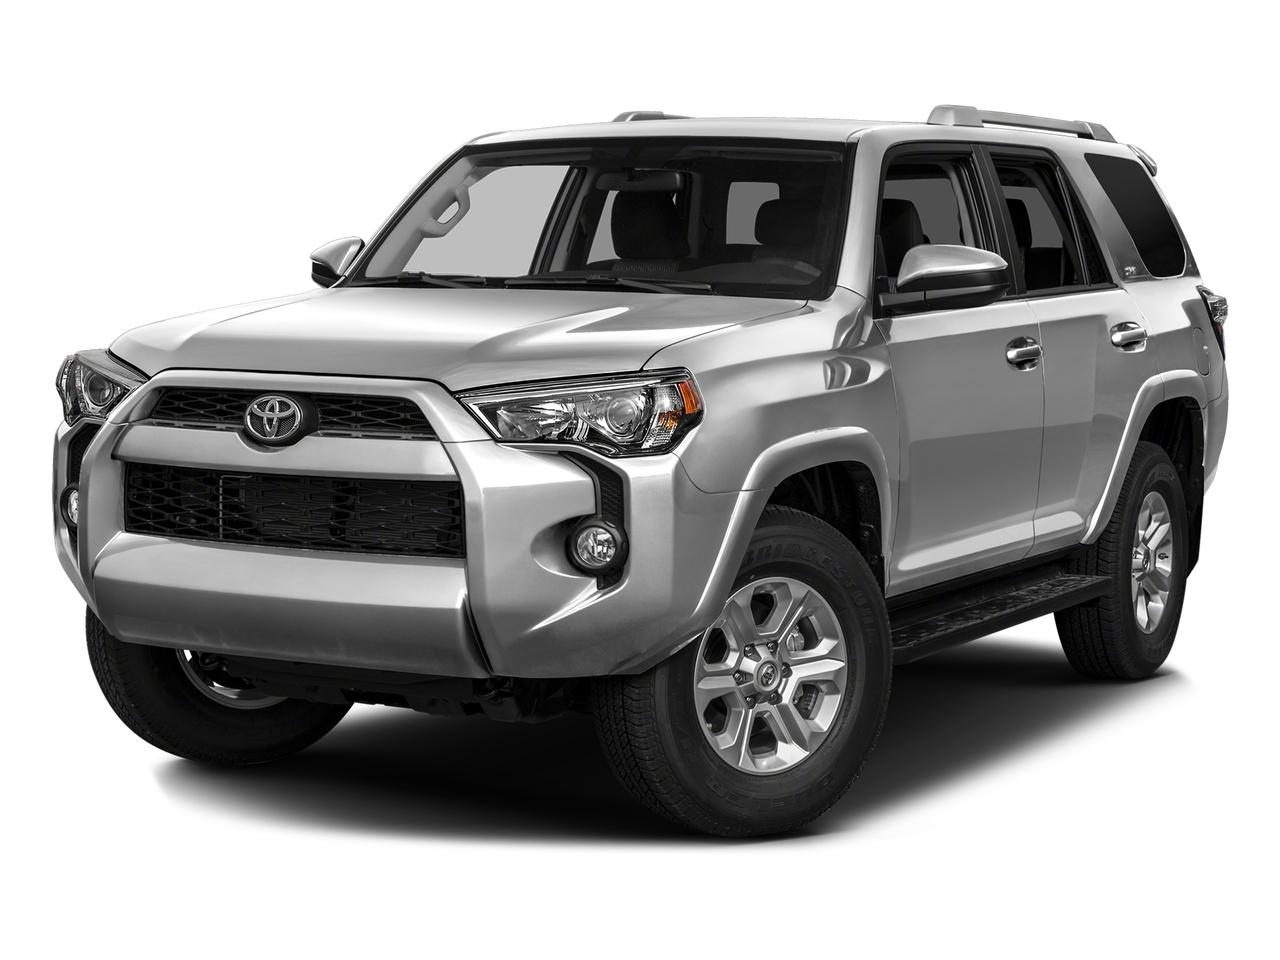 2016 Toyota 4Runner Vehicle Photo in Tulsa, OK 74133